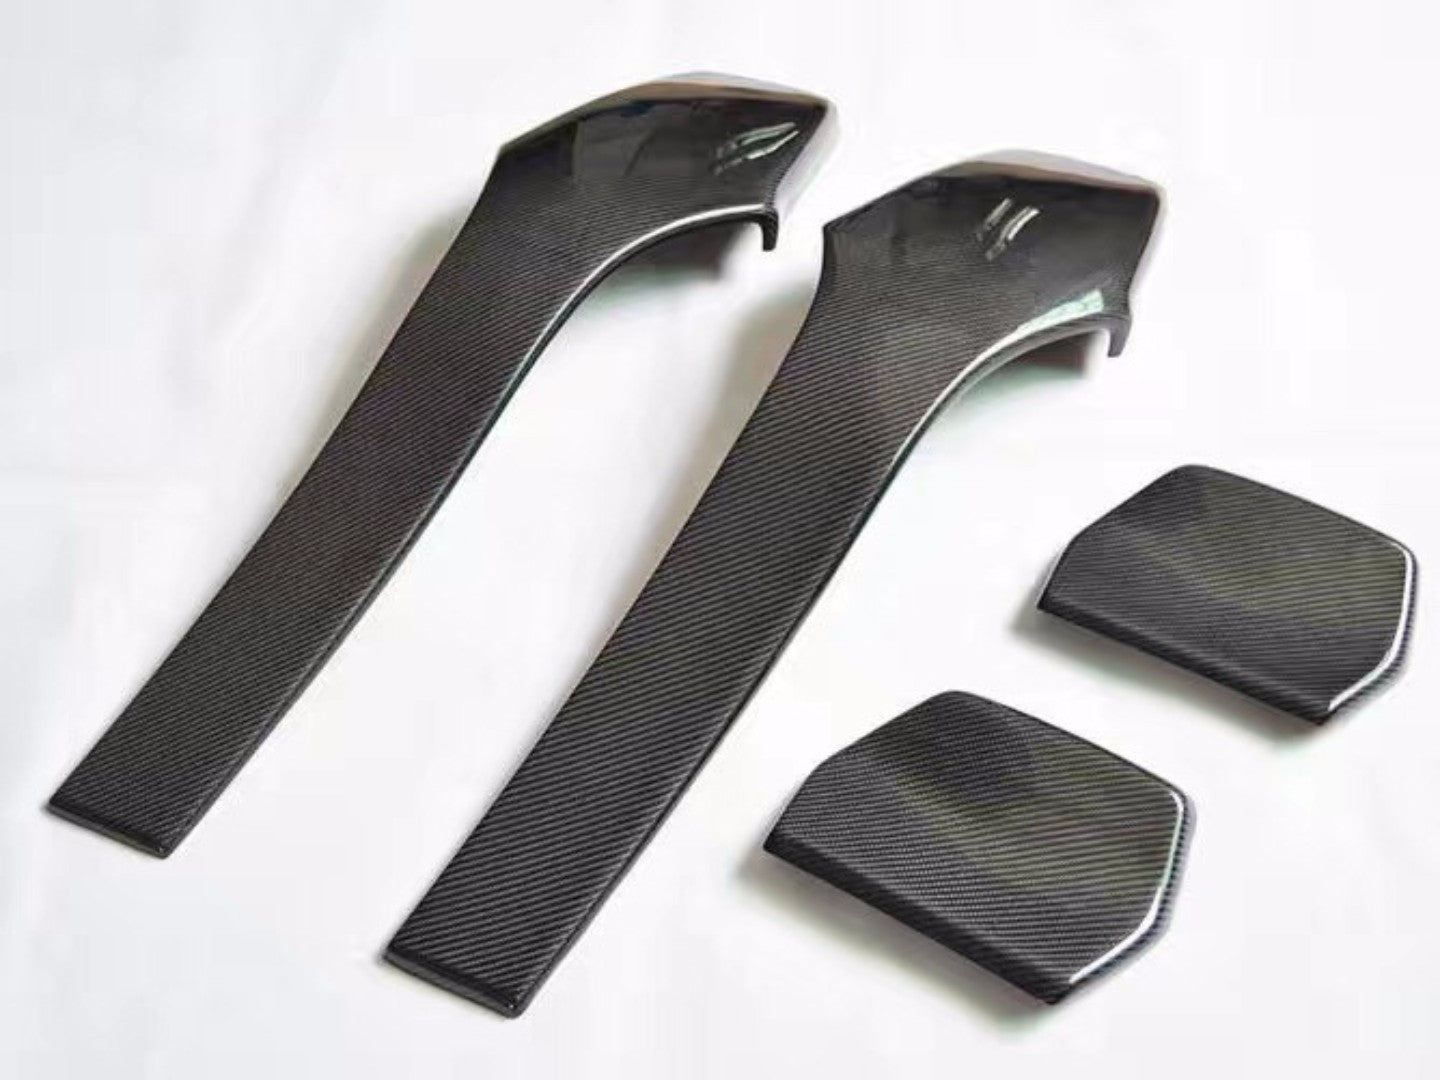 M PERFORMANCE SEAT SHELLS -  - Yomato Carbon - Montreal Canada